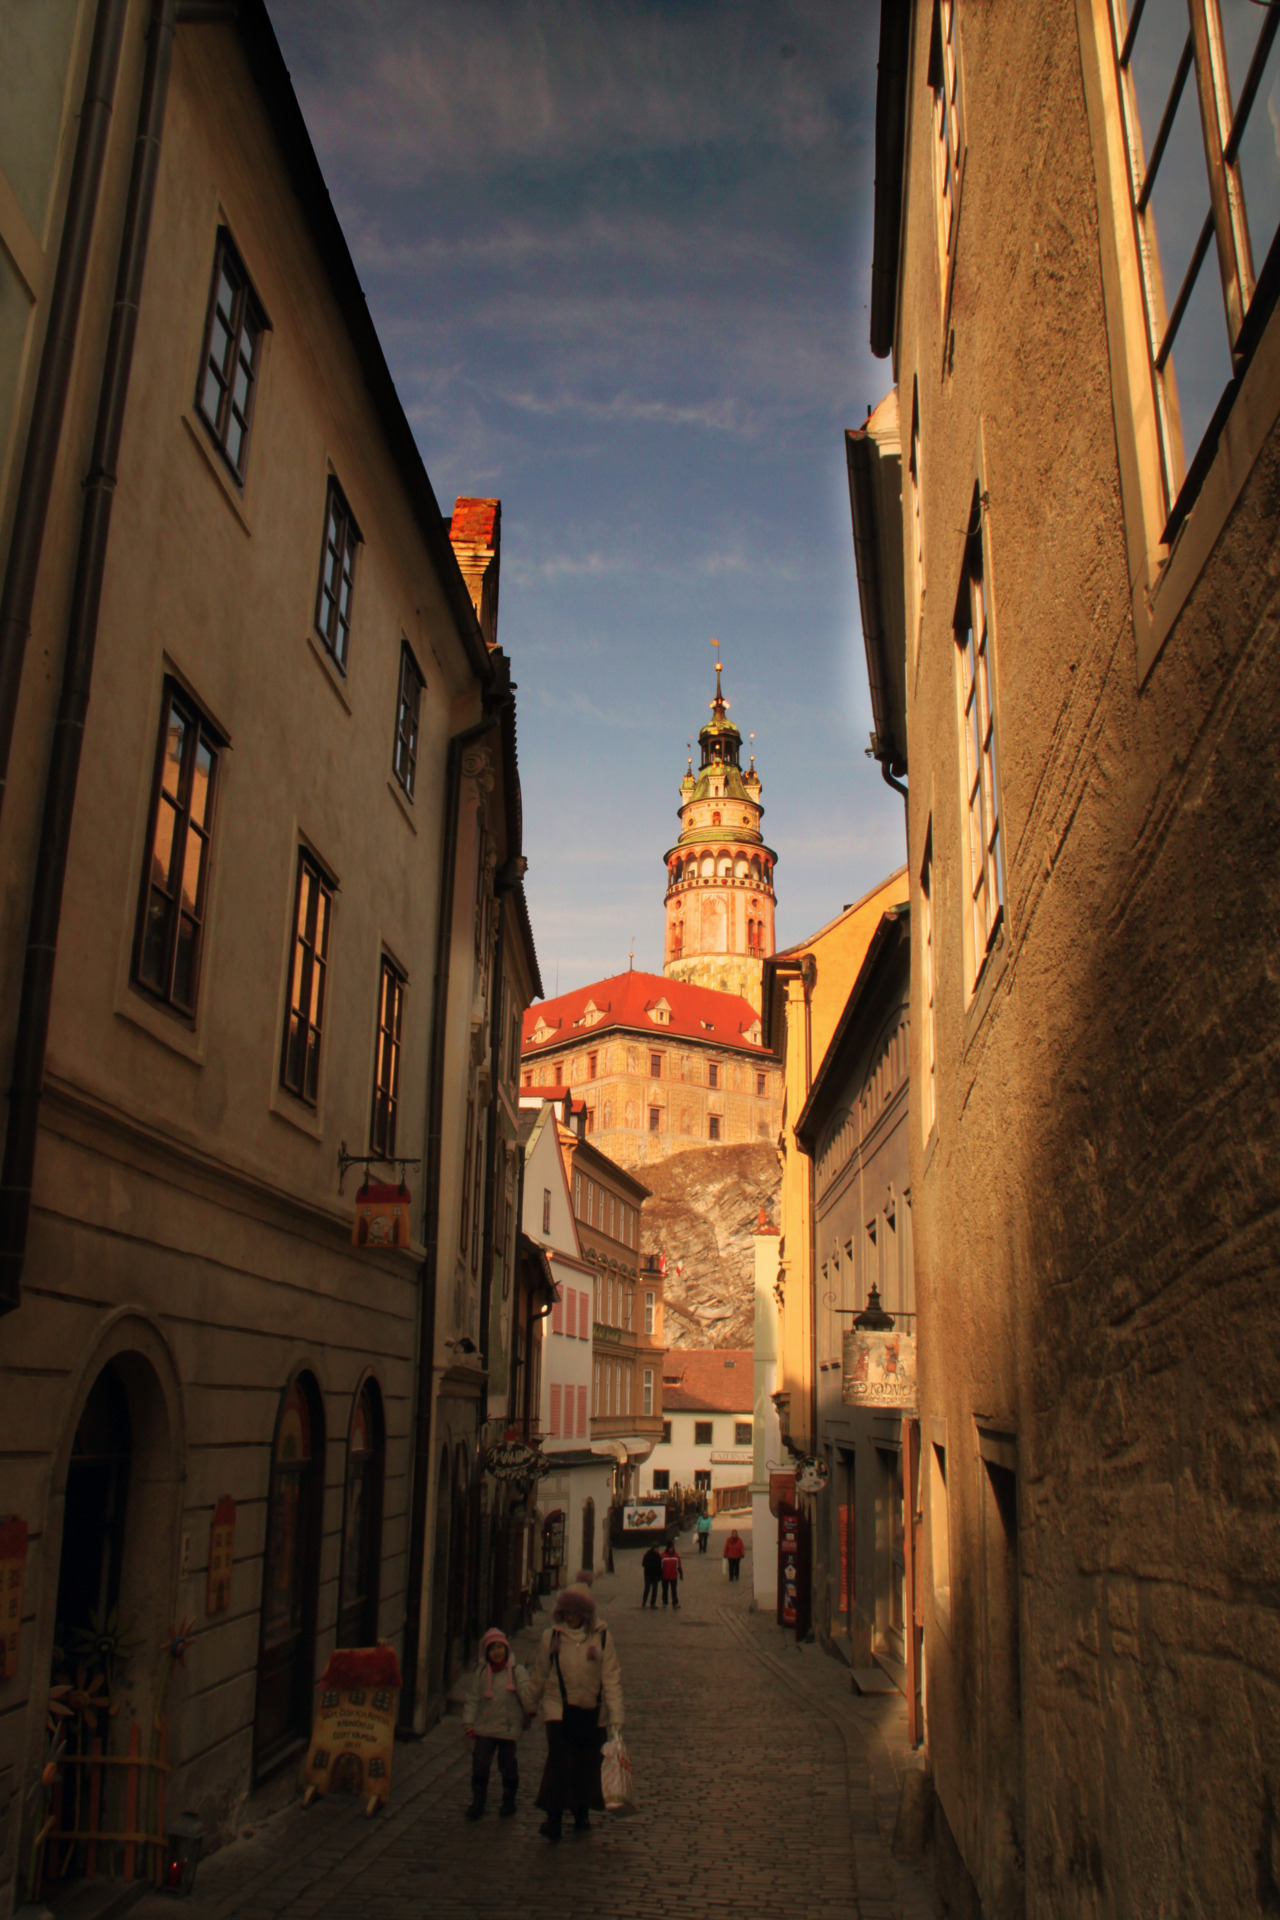 | ♕ |  Nam Svornosti, Cesky Krumlov, Czech Republic  photo taken/posted by © xorunaways